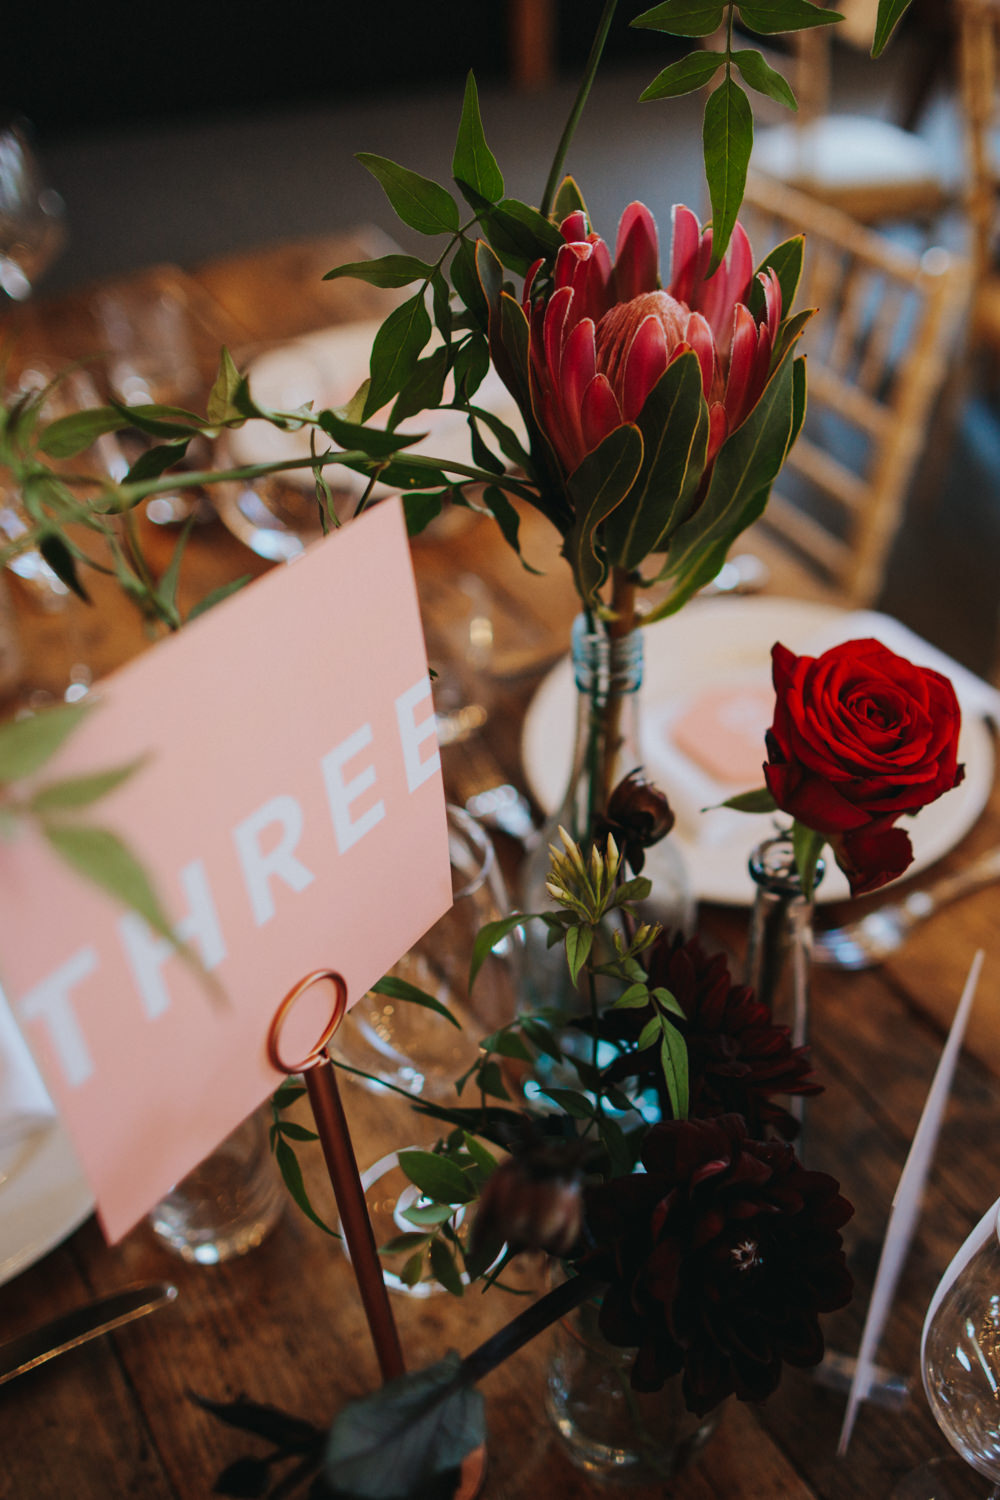 Protea Rose Bottle Copper Red Flowers Pink Graphic Table Names Numbers Godwick Great Barn Wedding Joshua Patrick Photography